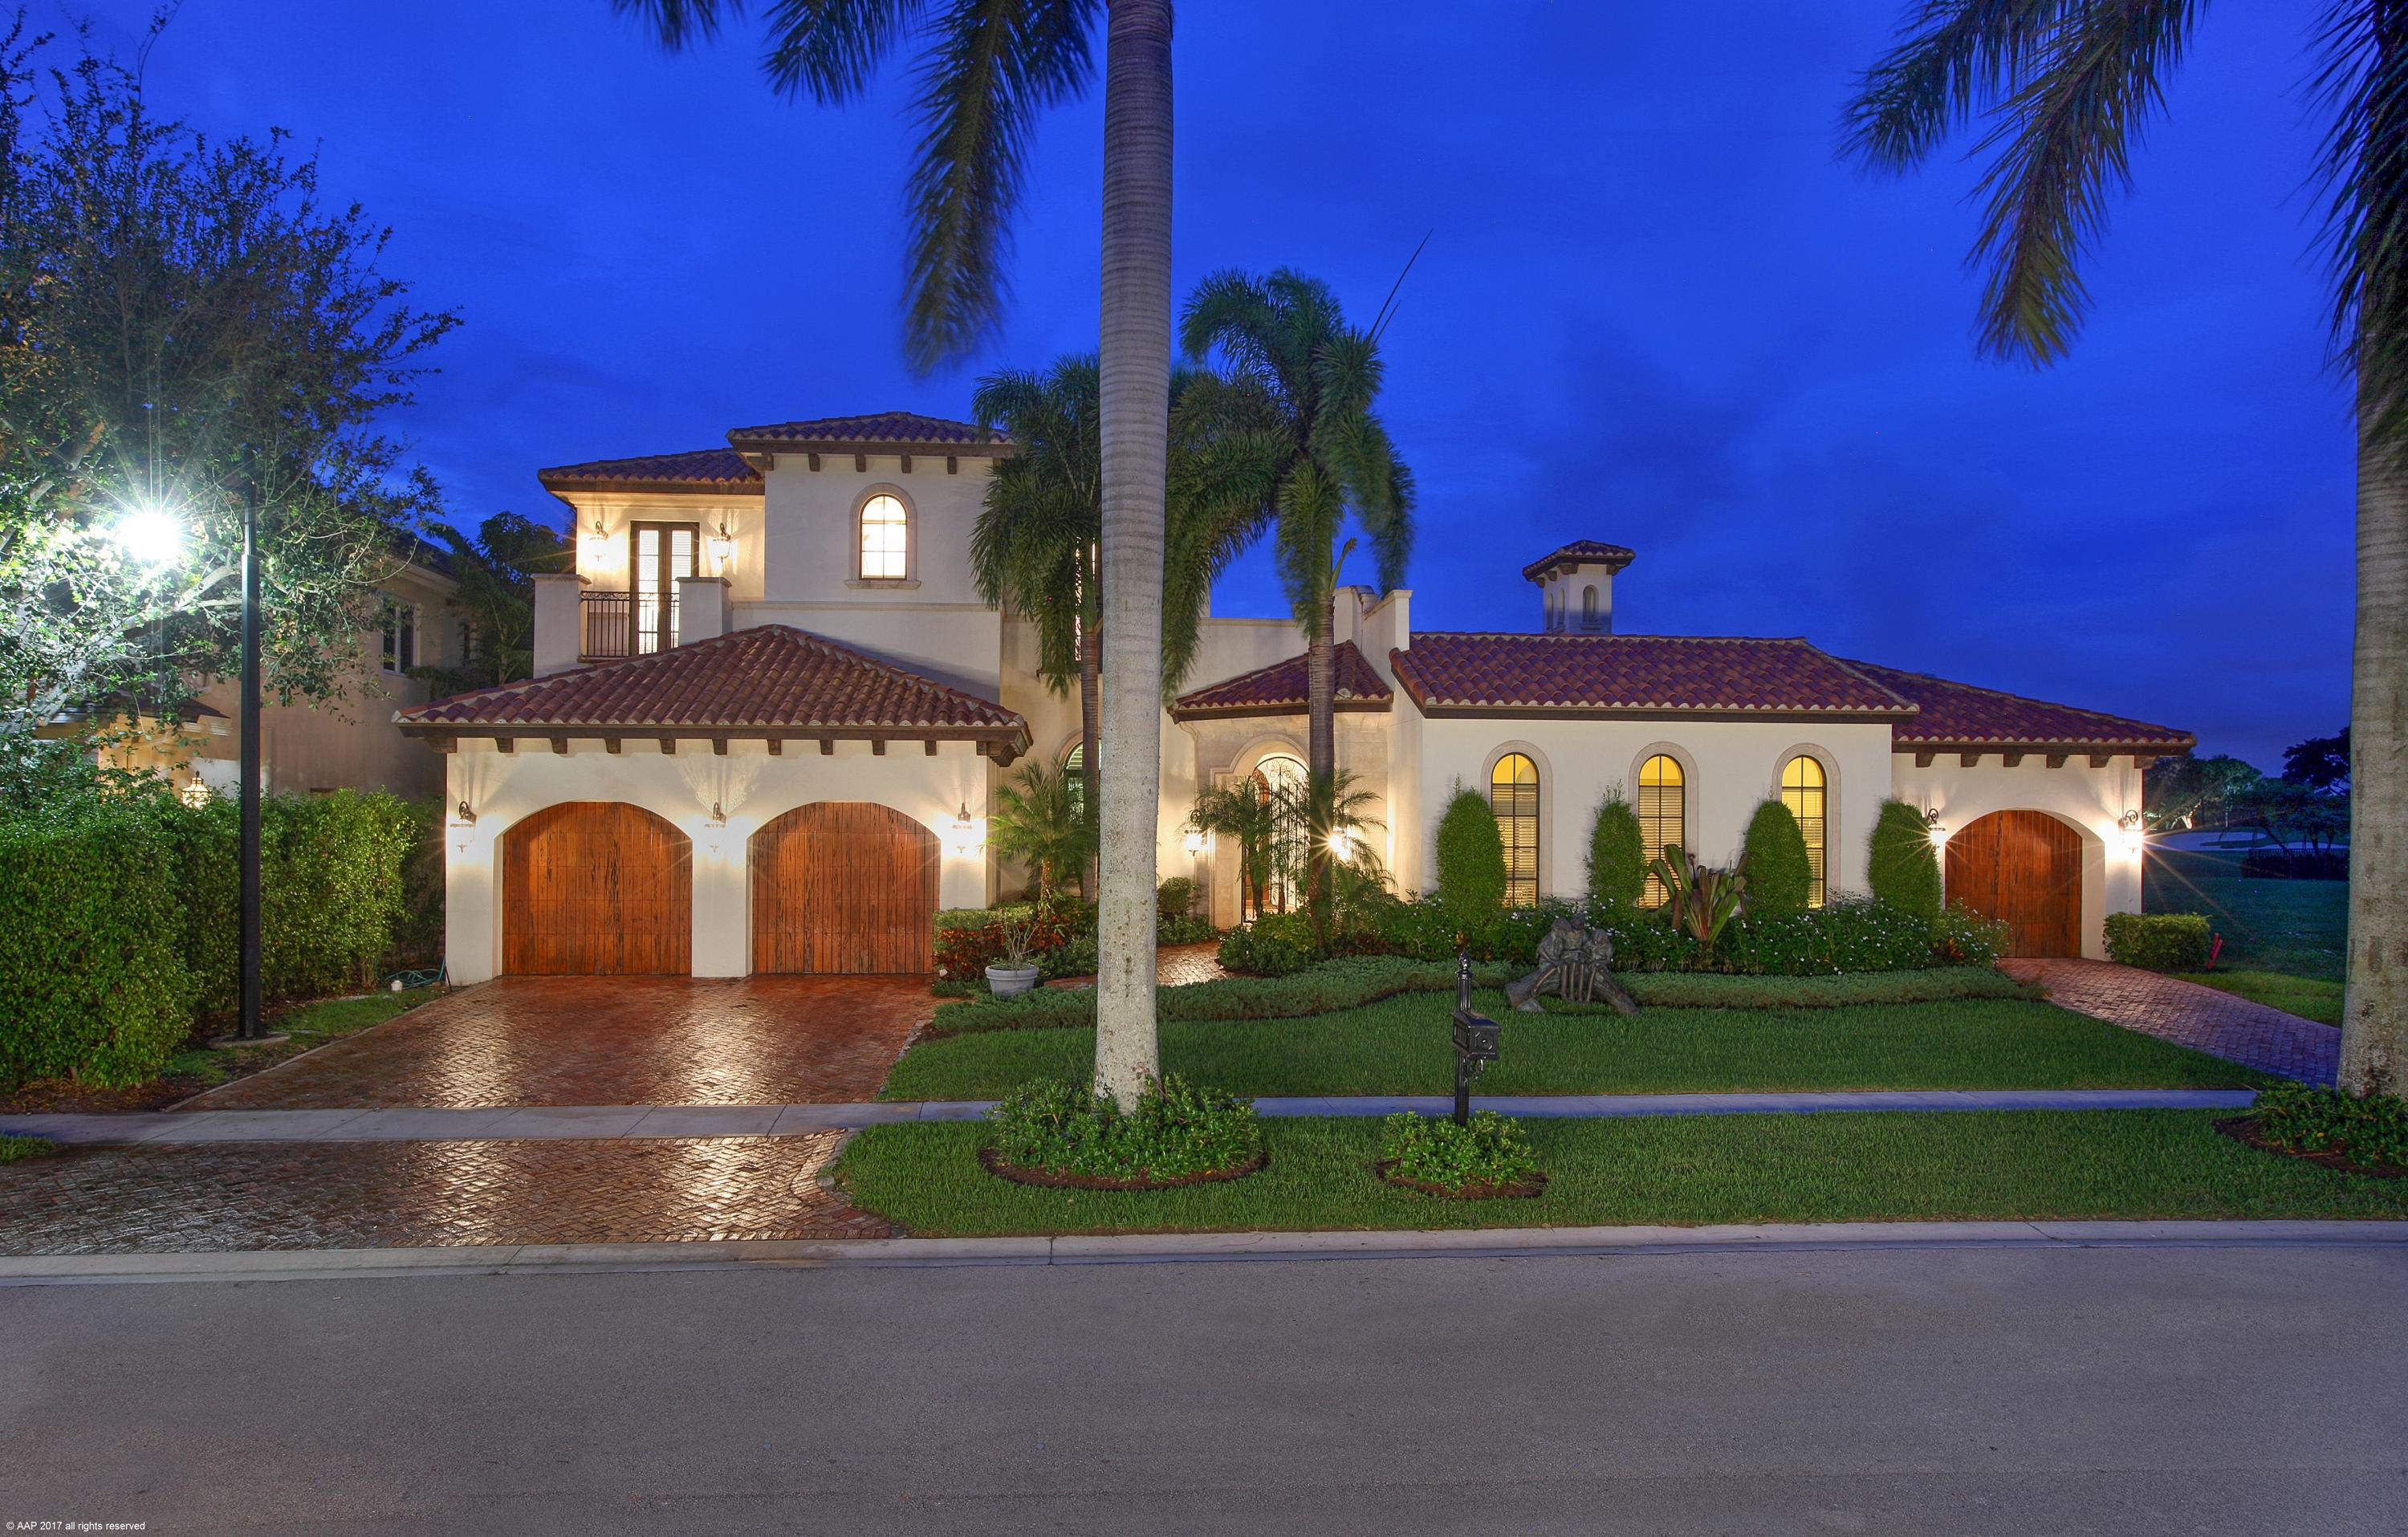 Magnificent Custom Home in Mizner Country Club w/impact glass/generator exquisitely designed in spanish revival style architecture. Formal living room w/vaulted cypress wood ceiling has Brazilian Walnut wood flooring. Wood floors accent the Dining Room,loft,& hallways throughout this estate. Distressed knotty Adler wood interior doors. Gourmet Chef's kitchen w/Subzero refrigerator, & prof. Viking gas stove. French Style sliding glass doors separate main living areas from tropical pool/spa, large covered loggia & outdoor summer kitchen overlooking serene lake & golf. Relax at the pool w/the sound of waterfall's. This 6 bedroom 6.2 bath home features 1st floor master suite, an additional guest suite & bonus room. Ascend sweeping staircase to a generous loft,4 additional guest rooms w/baths.. Magnificent Custom Home in Mizner Country Club w/impact glass/generator exquisitely designed in spanish revival style architecture. Formal living room w/vaulted cypress wood ceiling has Brazilian Walnut wood flooring. Wood floors accent the Dining Room,loft,& hallways throughout this estate. Distressed knotty Adler wood interior doors. Gourmet Chef's kitchen w/Subzero refrigerator, & prof. Viking gas stove. French Style sliding glass doors separate main living areas from tropical pool/spa, large covered loggia & outdoor summer kitchen overlooking serene lake & golf. Relax at the pool w/the sound of waterfall's. This 6 bedroom 6.2 bath home features 1st floor master suite, an additional guest suite & bonus room. Ascend sweeping staircase to a generous loft,4 additional guest rooms w/baths  ensuite and an additional outdoor loggia overlooking Mizner Country Club's new golf course & tropical pool area. Now is the time to buy in Mizner Country Club! Golf Equity is currently on special. This truly stunning home w/ unremitting lake and golf vistas should not be missed. Schedule a private tour today.